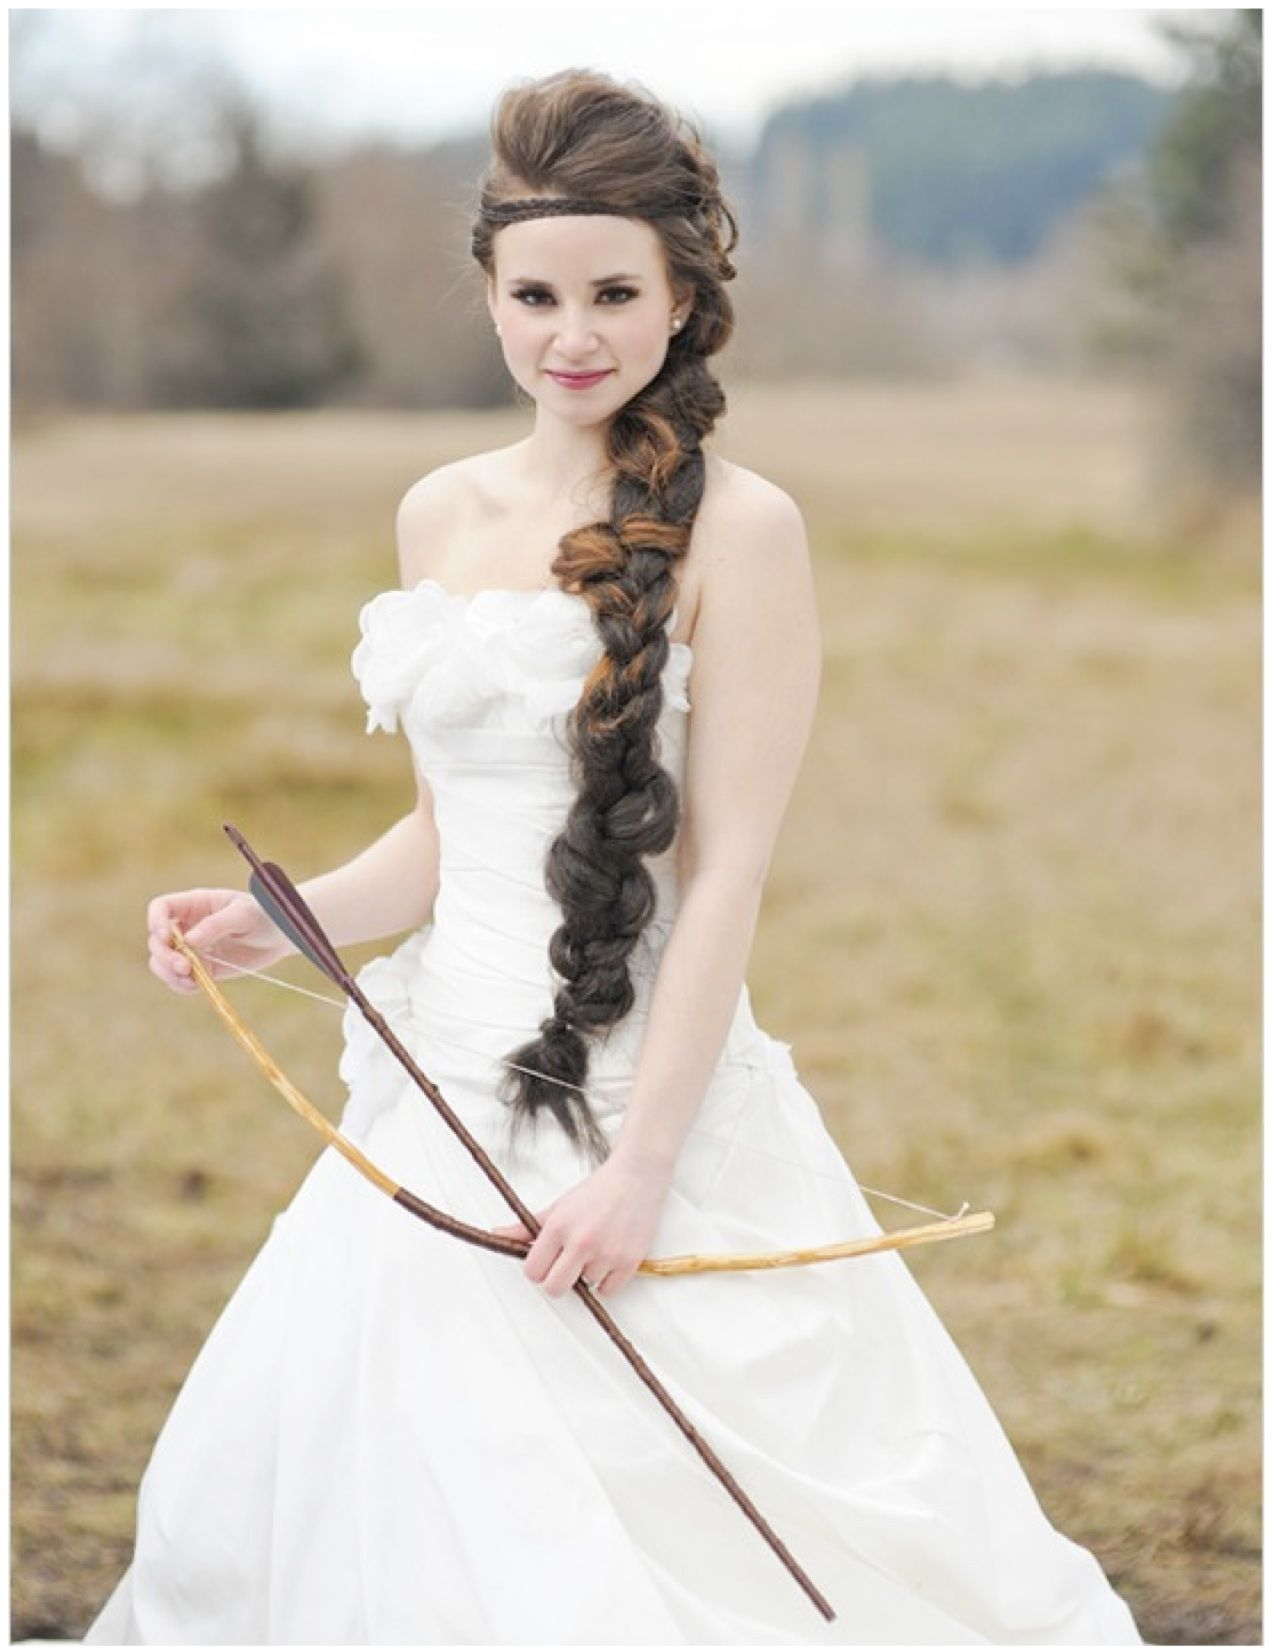 Hunger Games Inspired Wedding Shoot